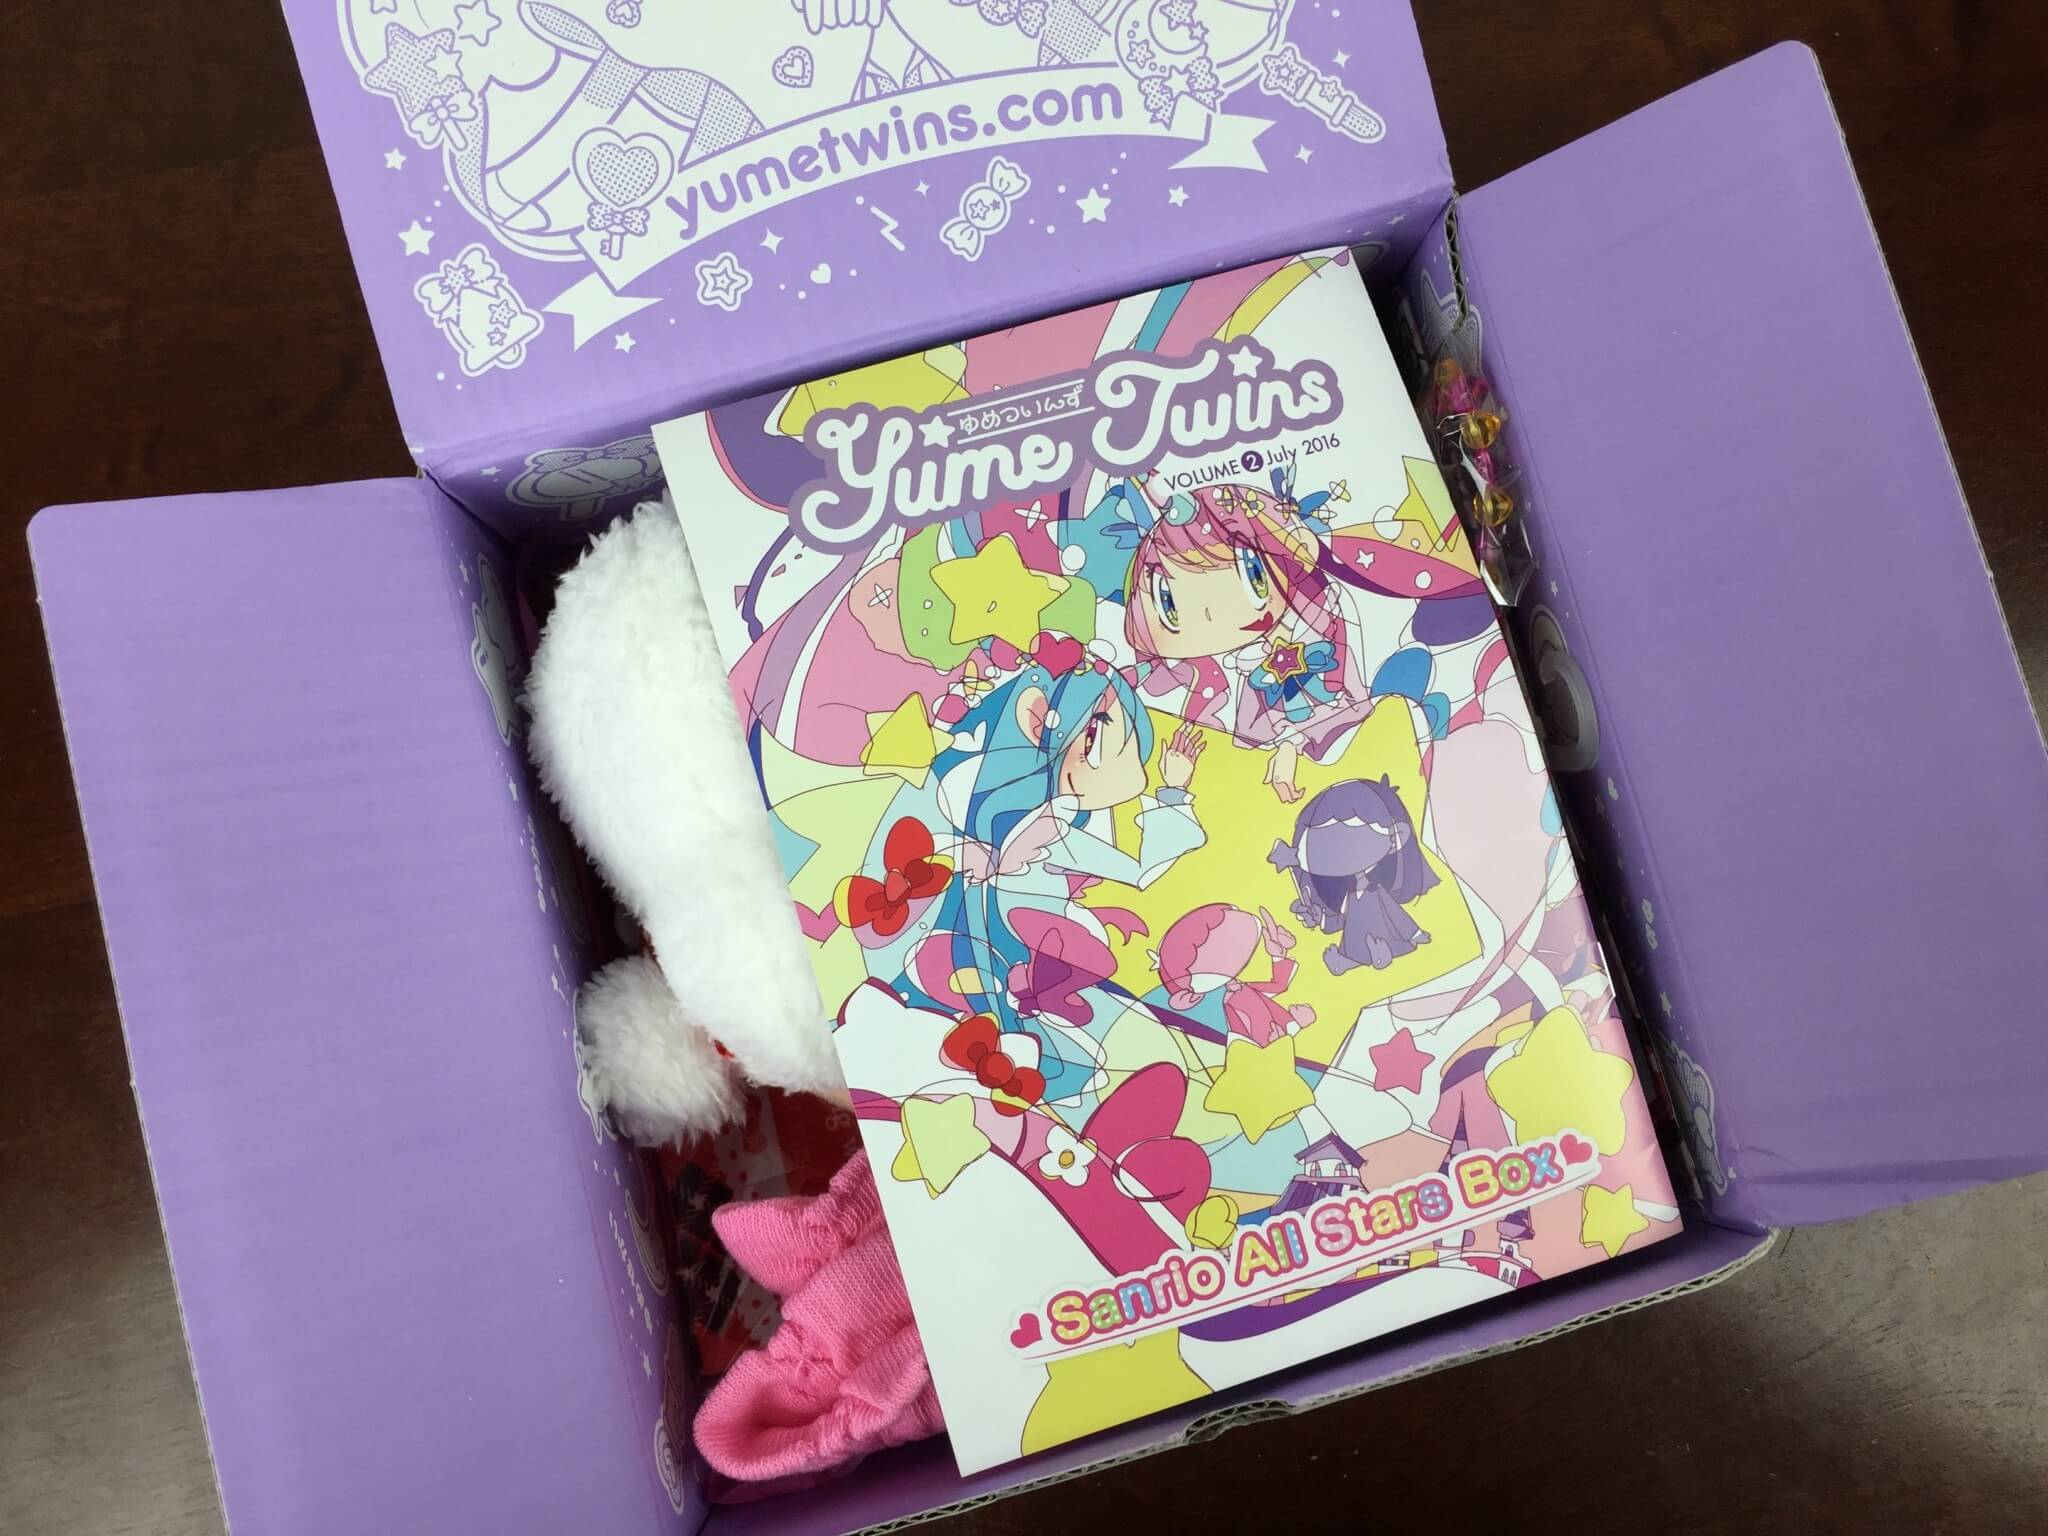 Yume Twins Box July 2016 unboxed